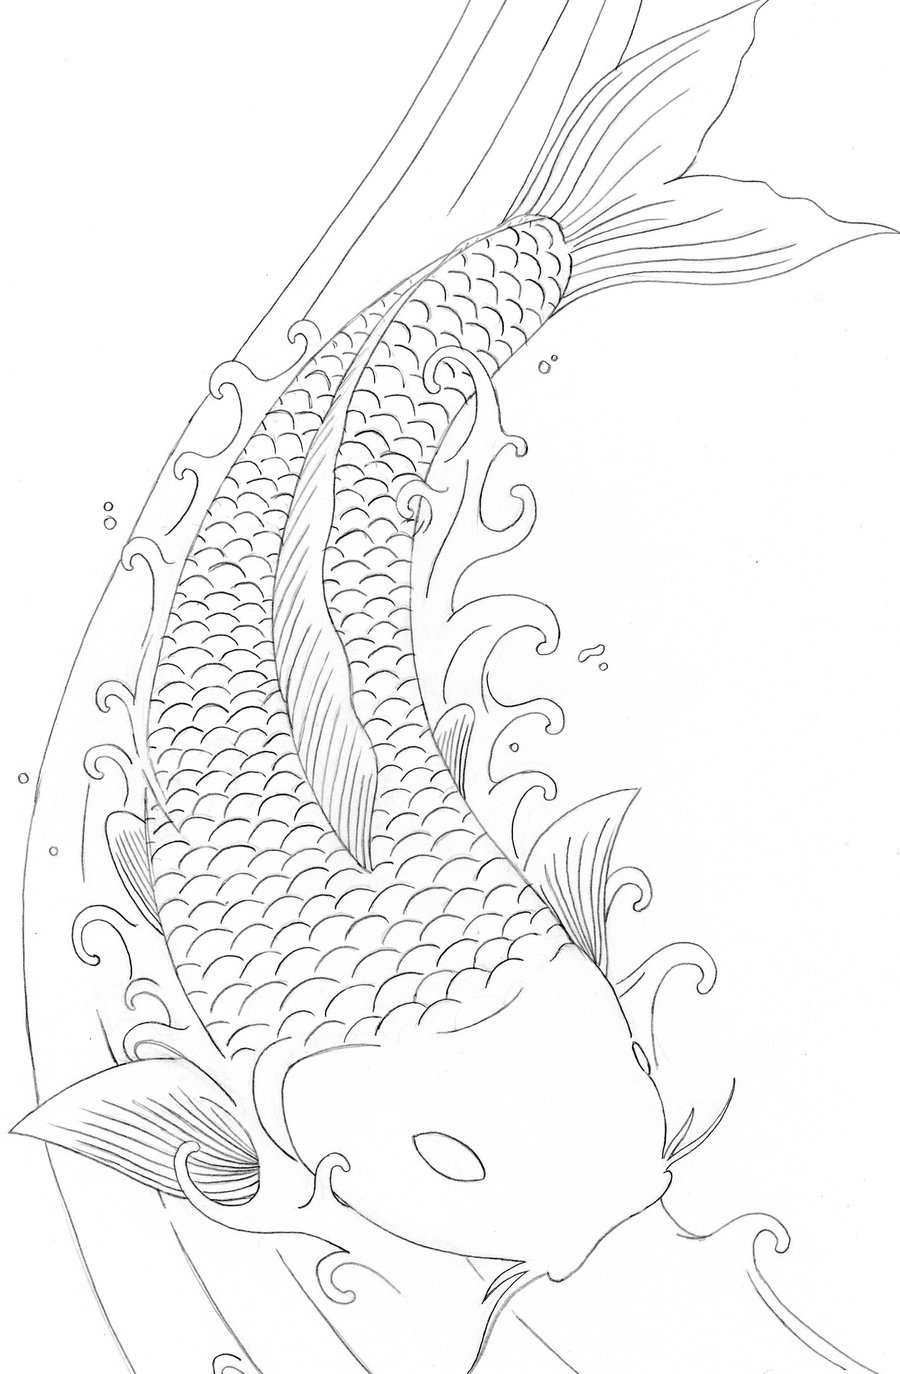 pictures of fish to color koi fish coloring pages to download and print for free color to pictures of fish